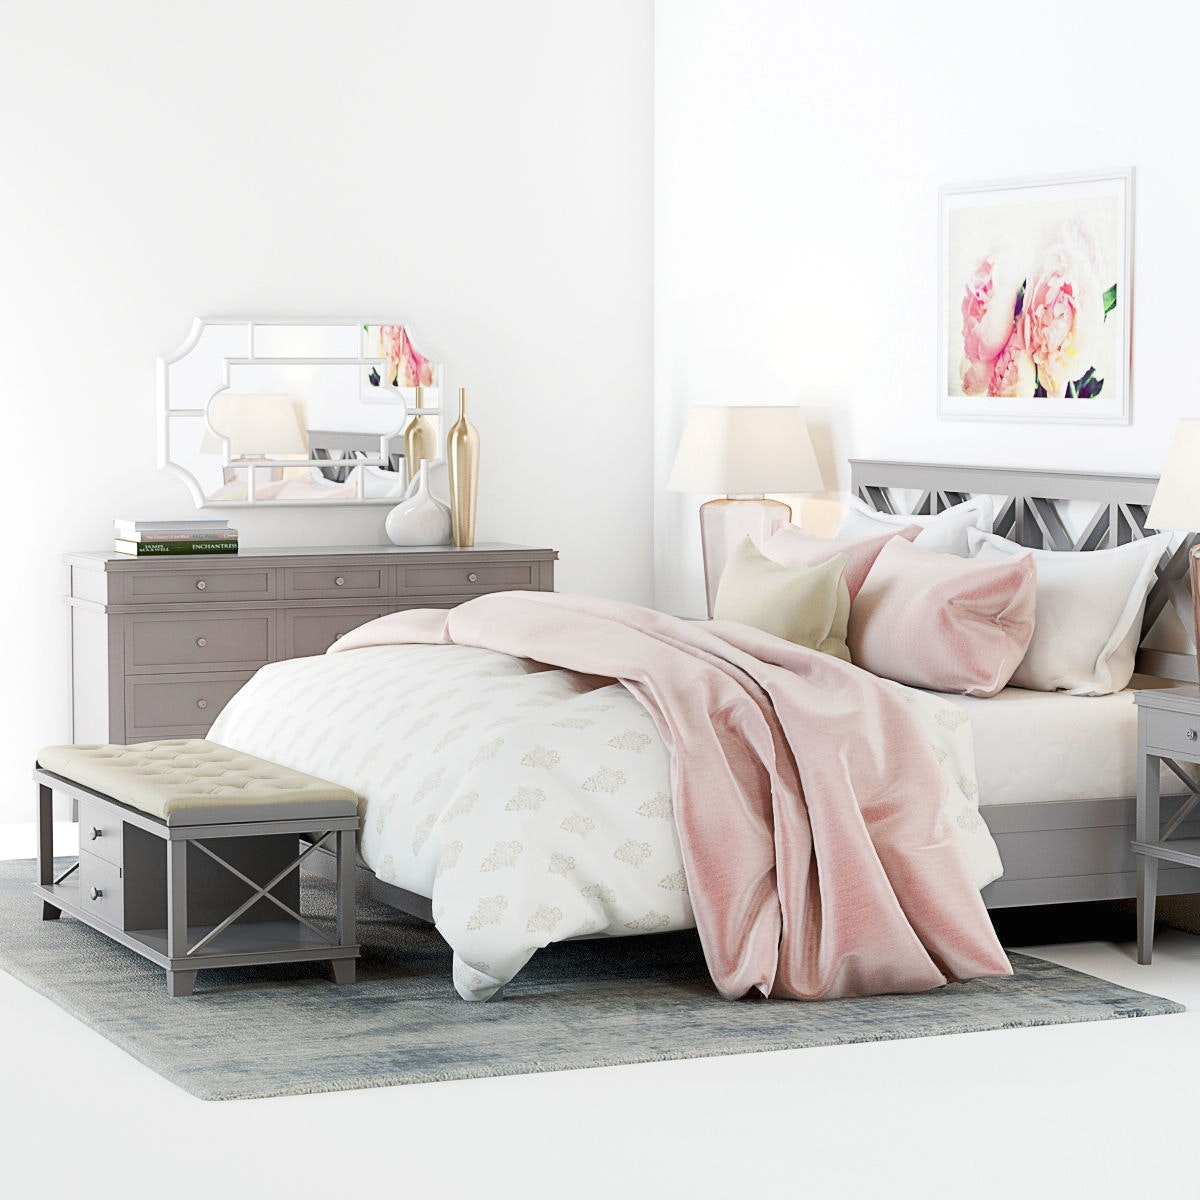 Kids Bedroom Sets Pottery Barn With Bed Set And Img Hero Feature On Layjao